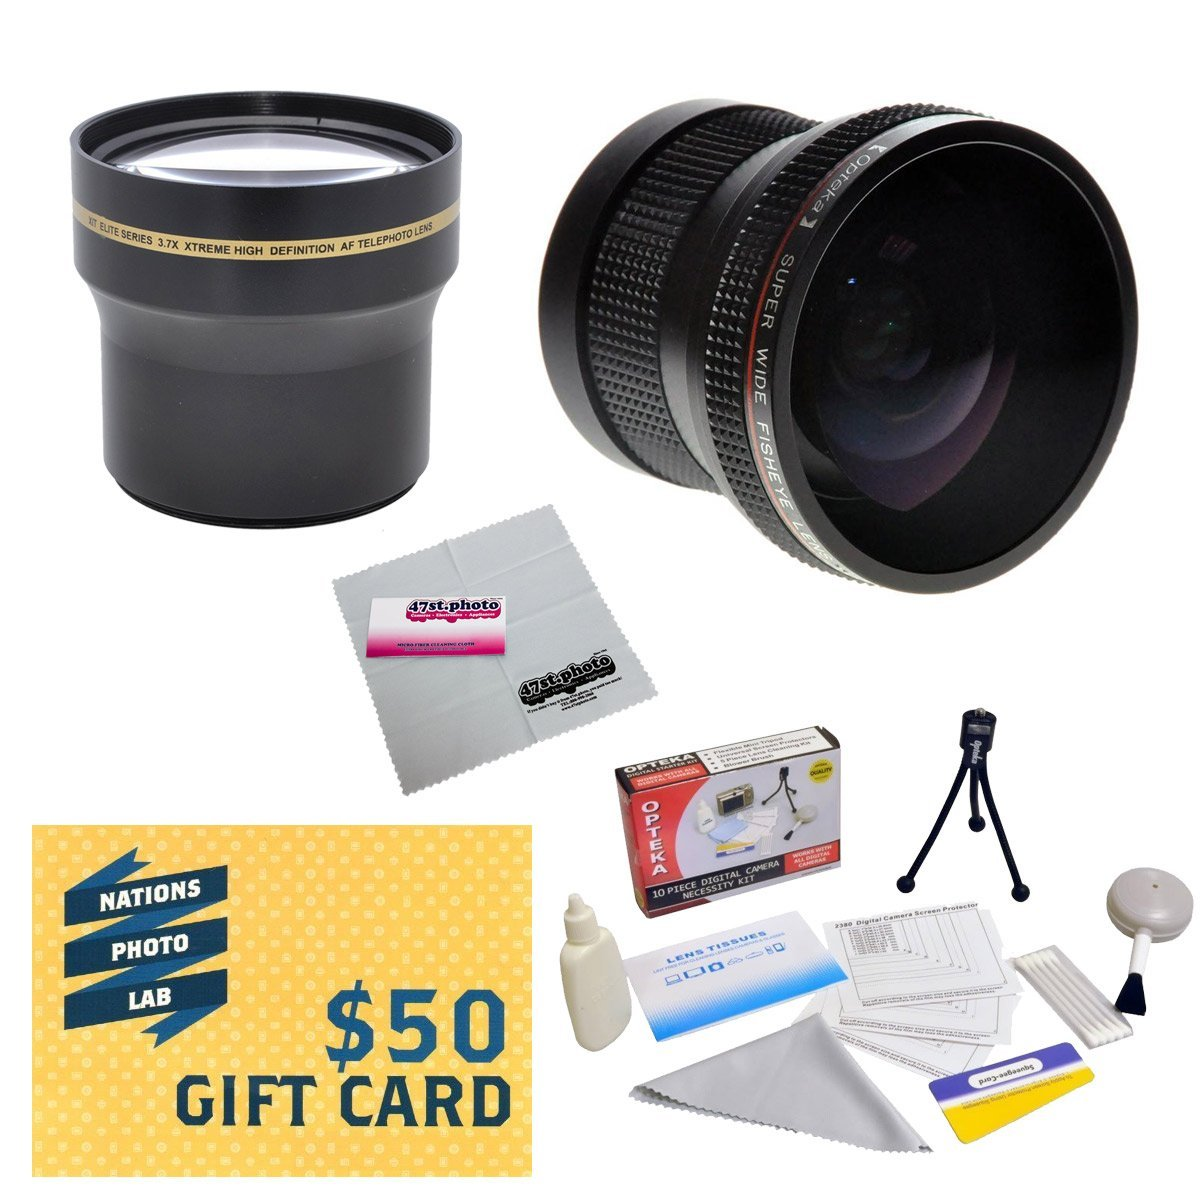 Professional 3.7X Telephoto & 0.20X Fisheye Lens Package For Olympus EVOLT E-510 E-410 E-420 E-500 E-330 E-620 E-520 E-3 E-30 E-1 E-450 E-5 70-300MM 40-150MM 14-42MM 14-45MM 14-52MM 35-70MM 35MM